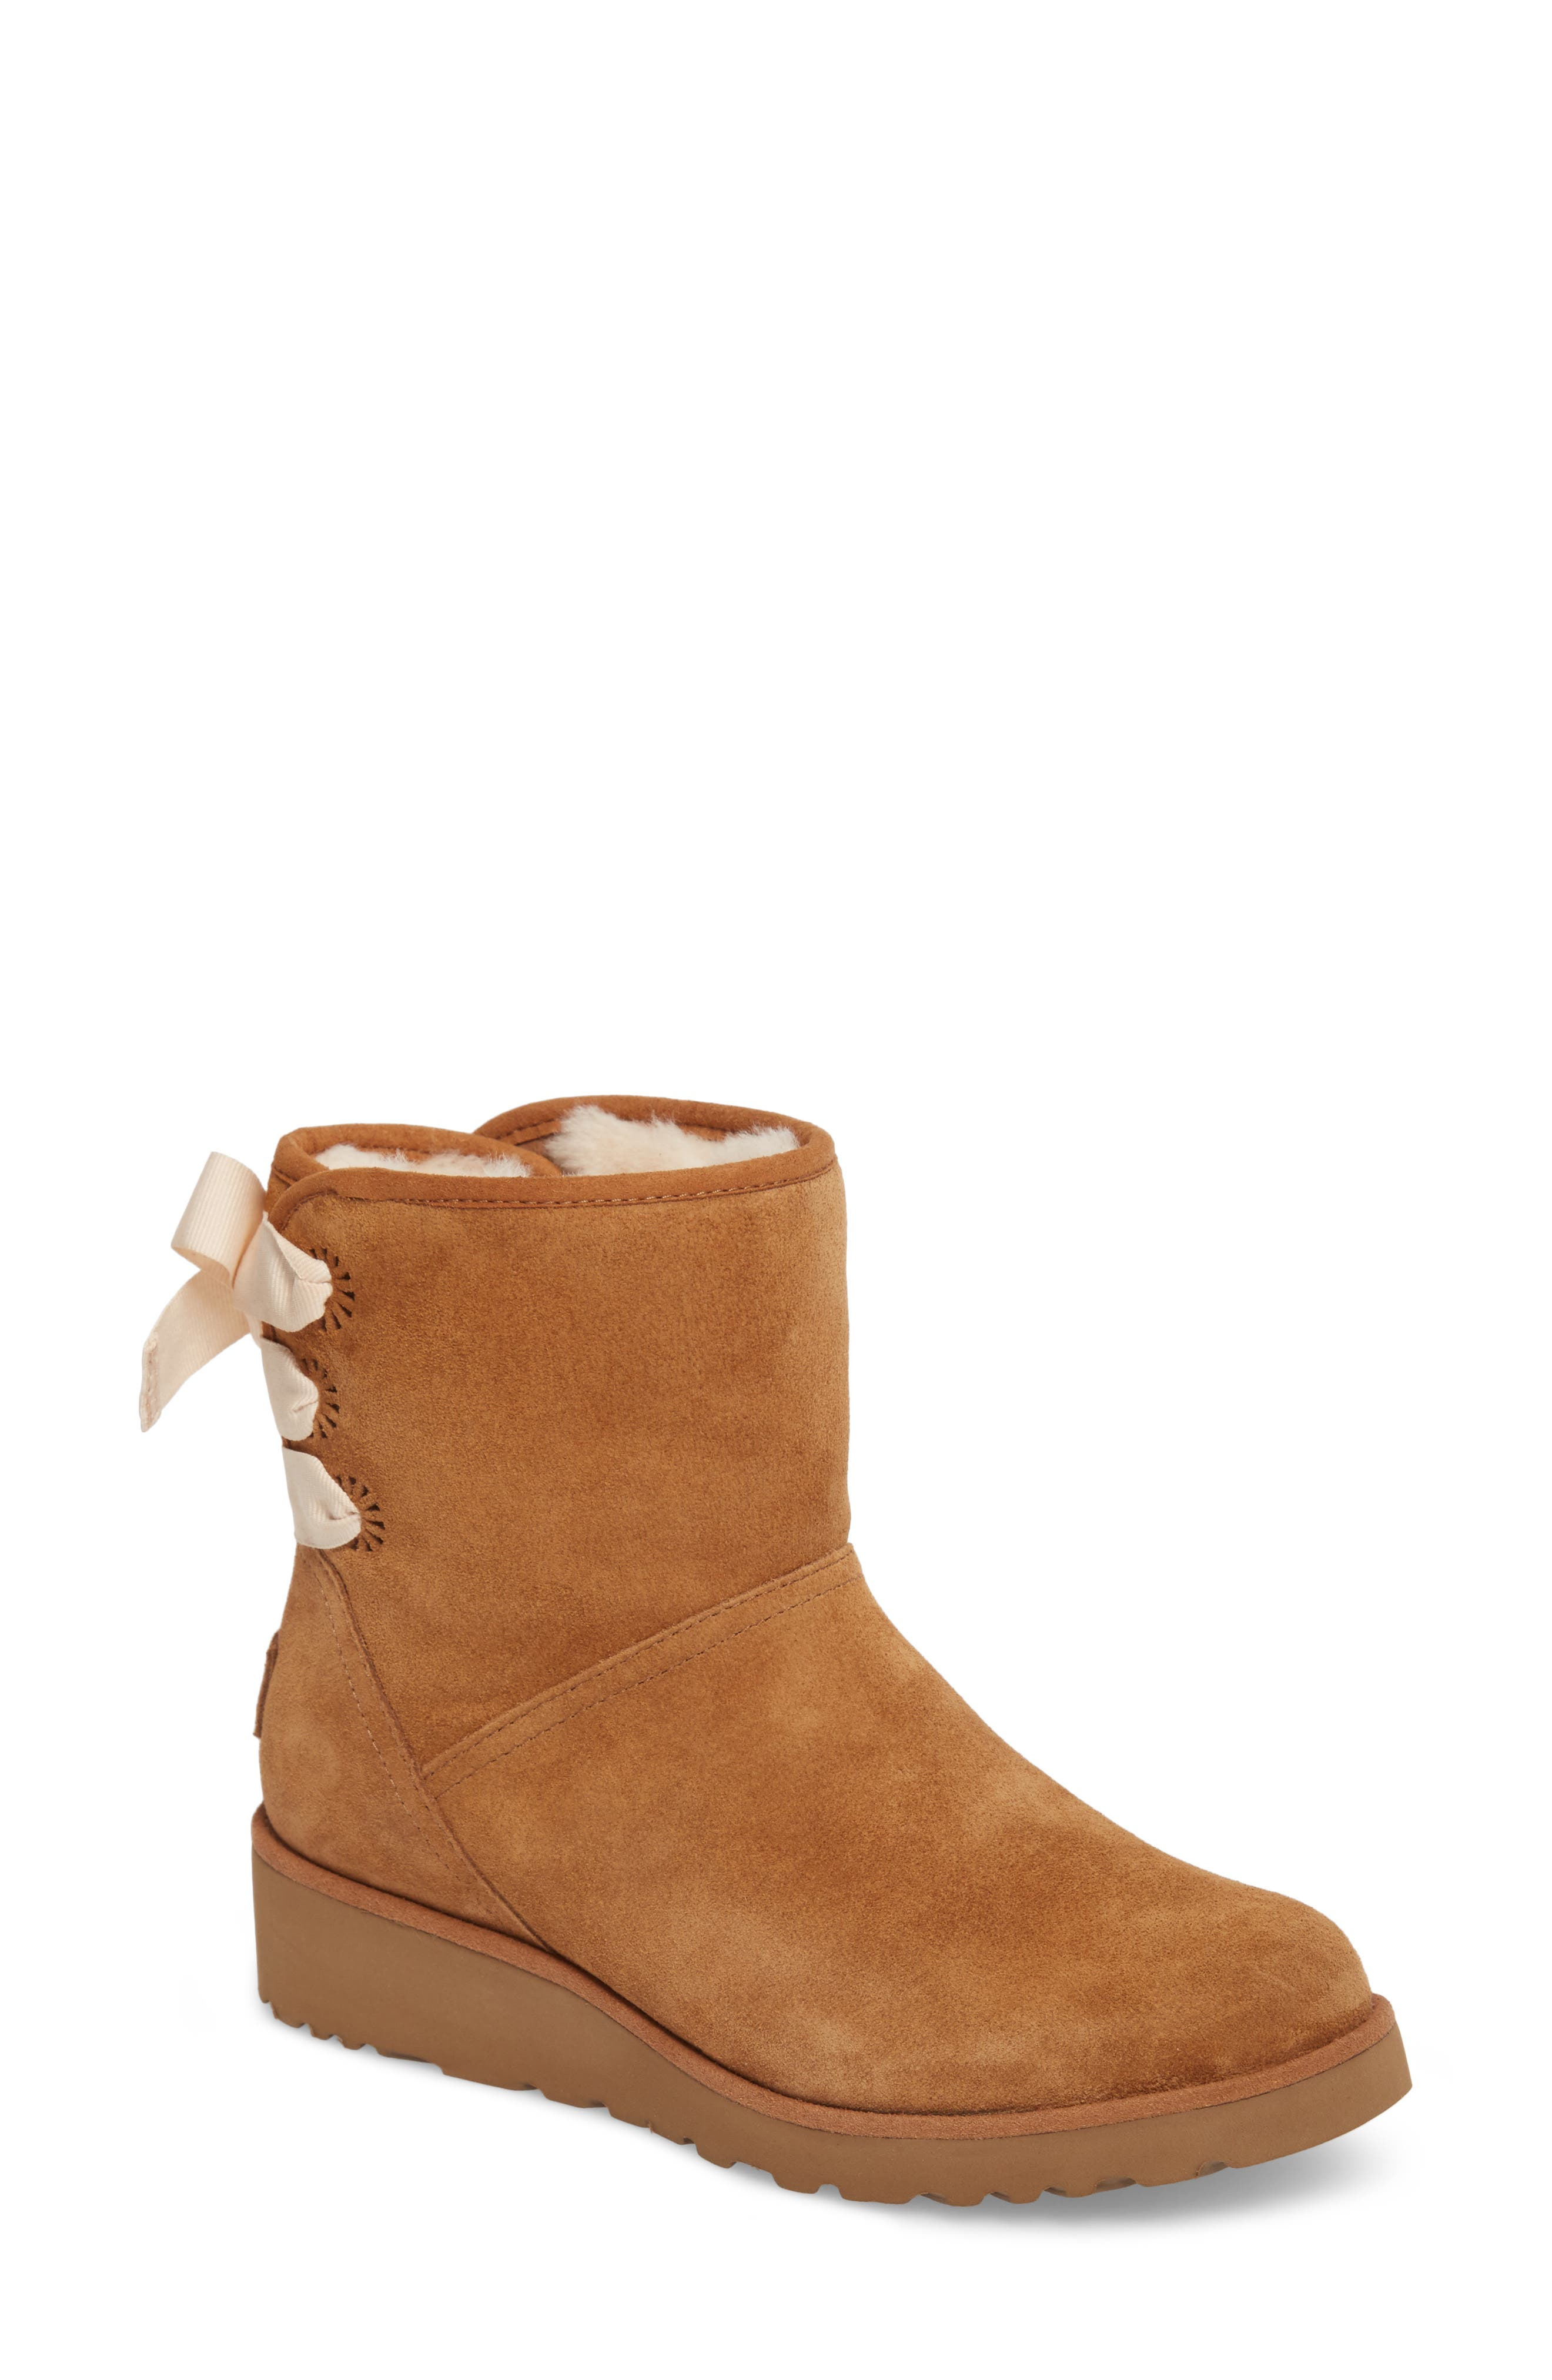 Drew Sunshine Perforated Tie Back Boot,                             Main thumbnail 2, color,